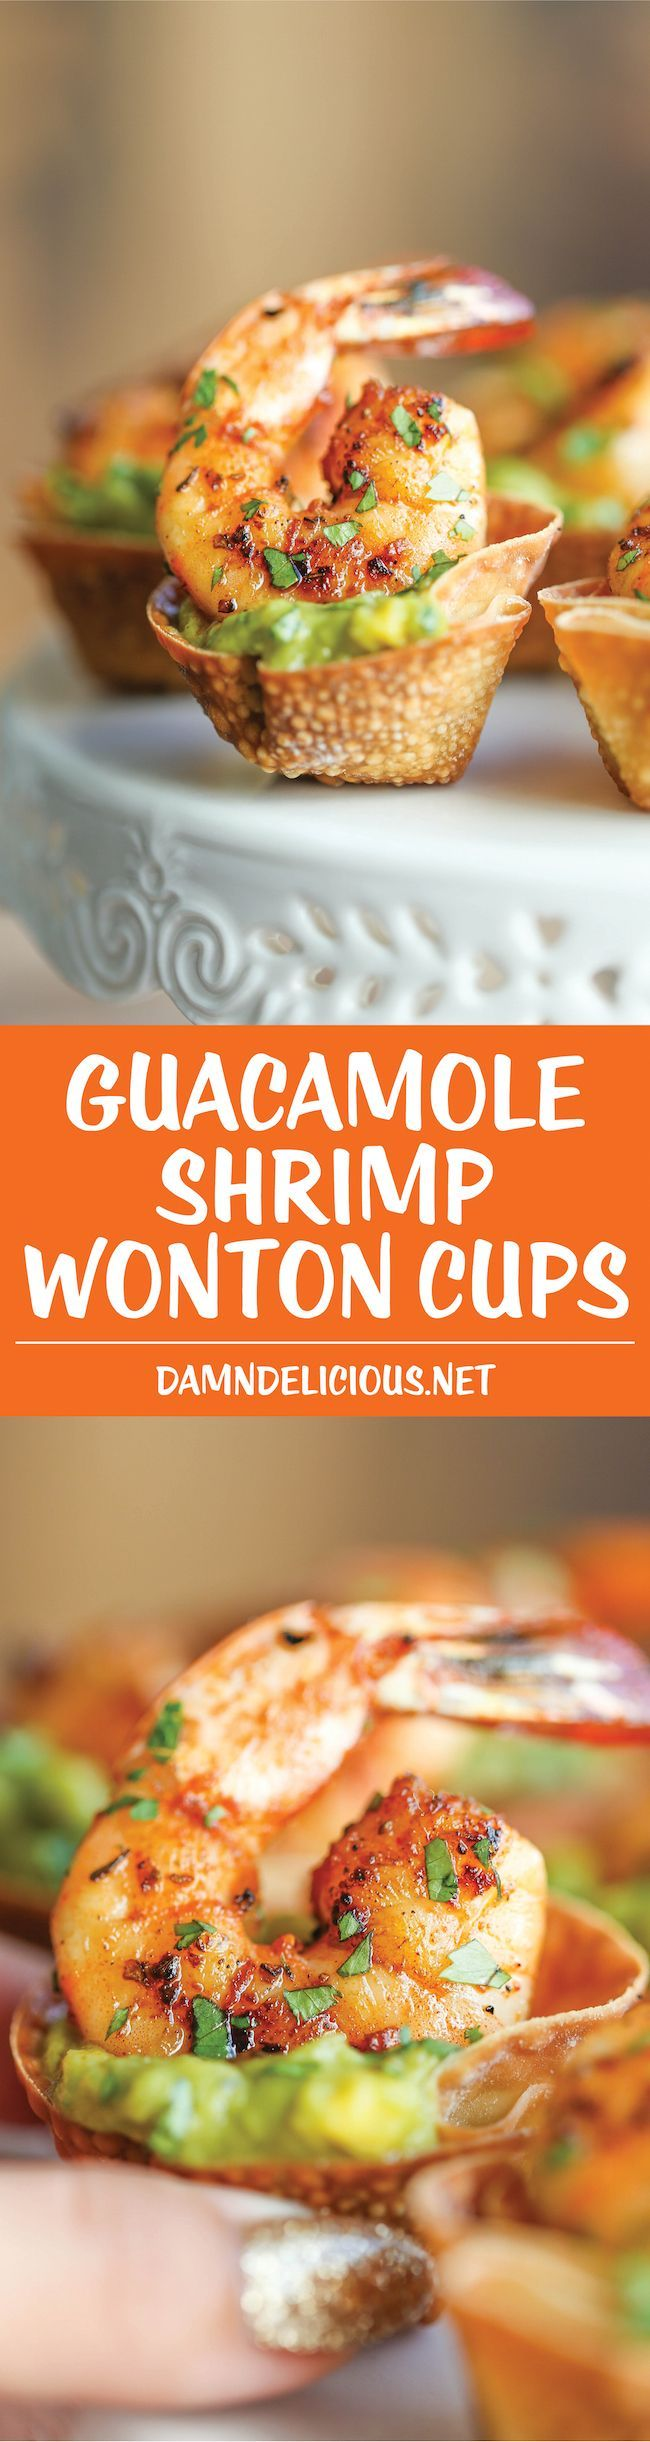 Guacamole Shrimp Wonton Cups - Crisp wonton cups filled with guacamole and cajun grilled shrimp. A quick and easy appetizer sure to impress everyone!